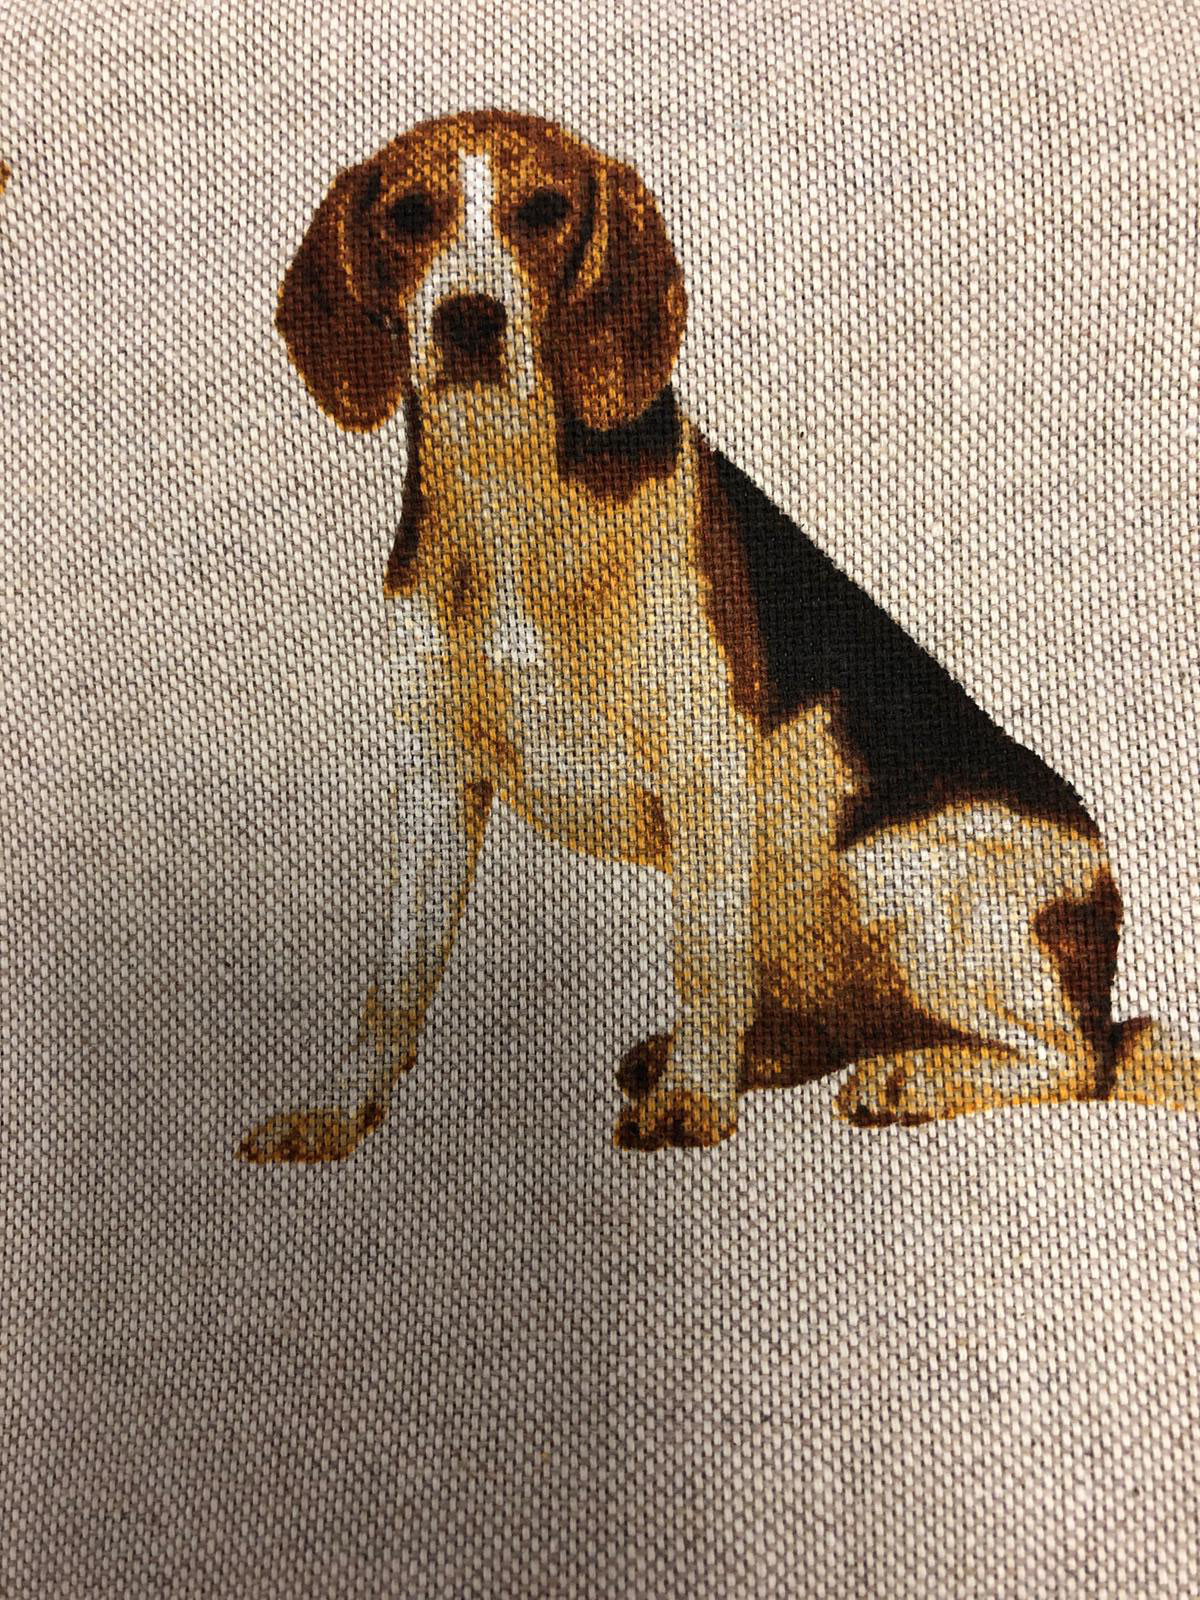 """Eddie the Beagle"" Detail"